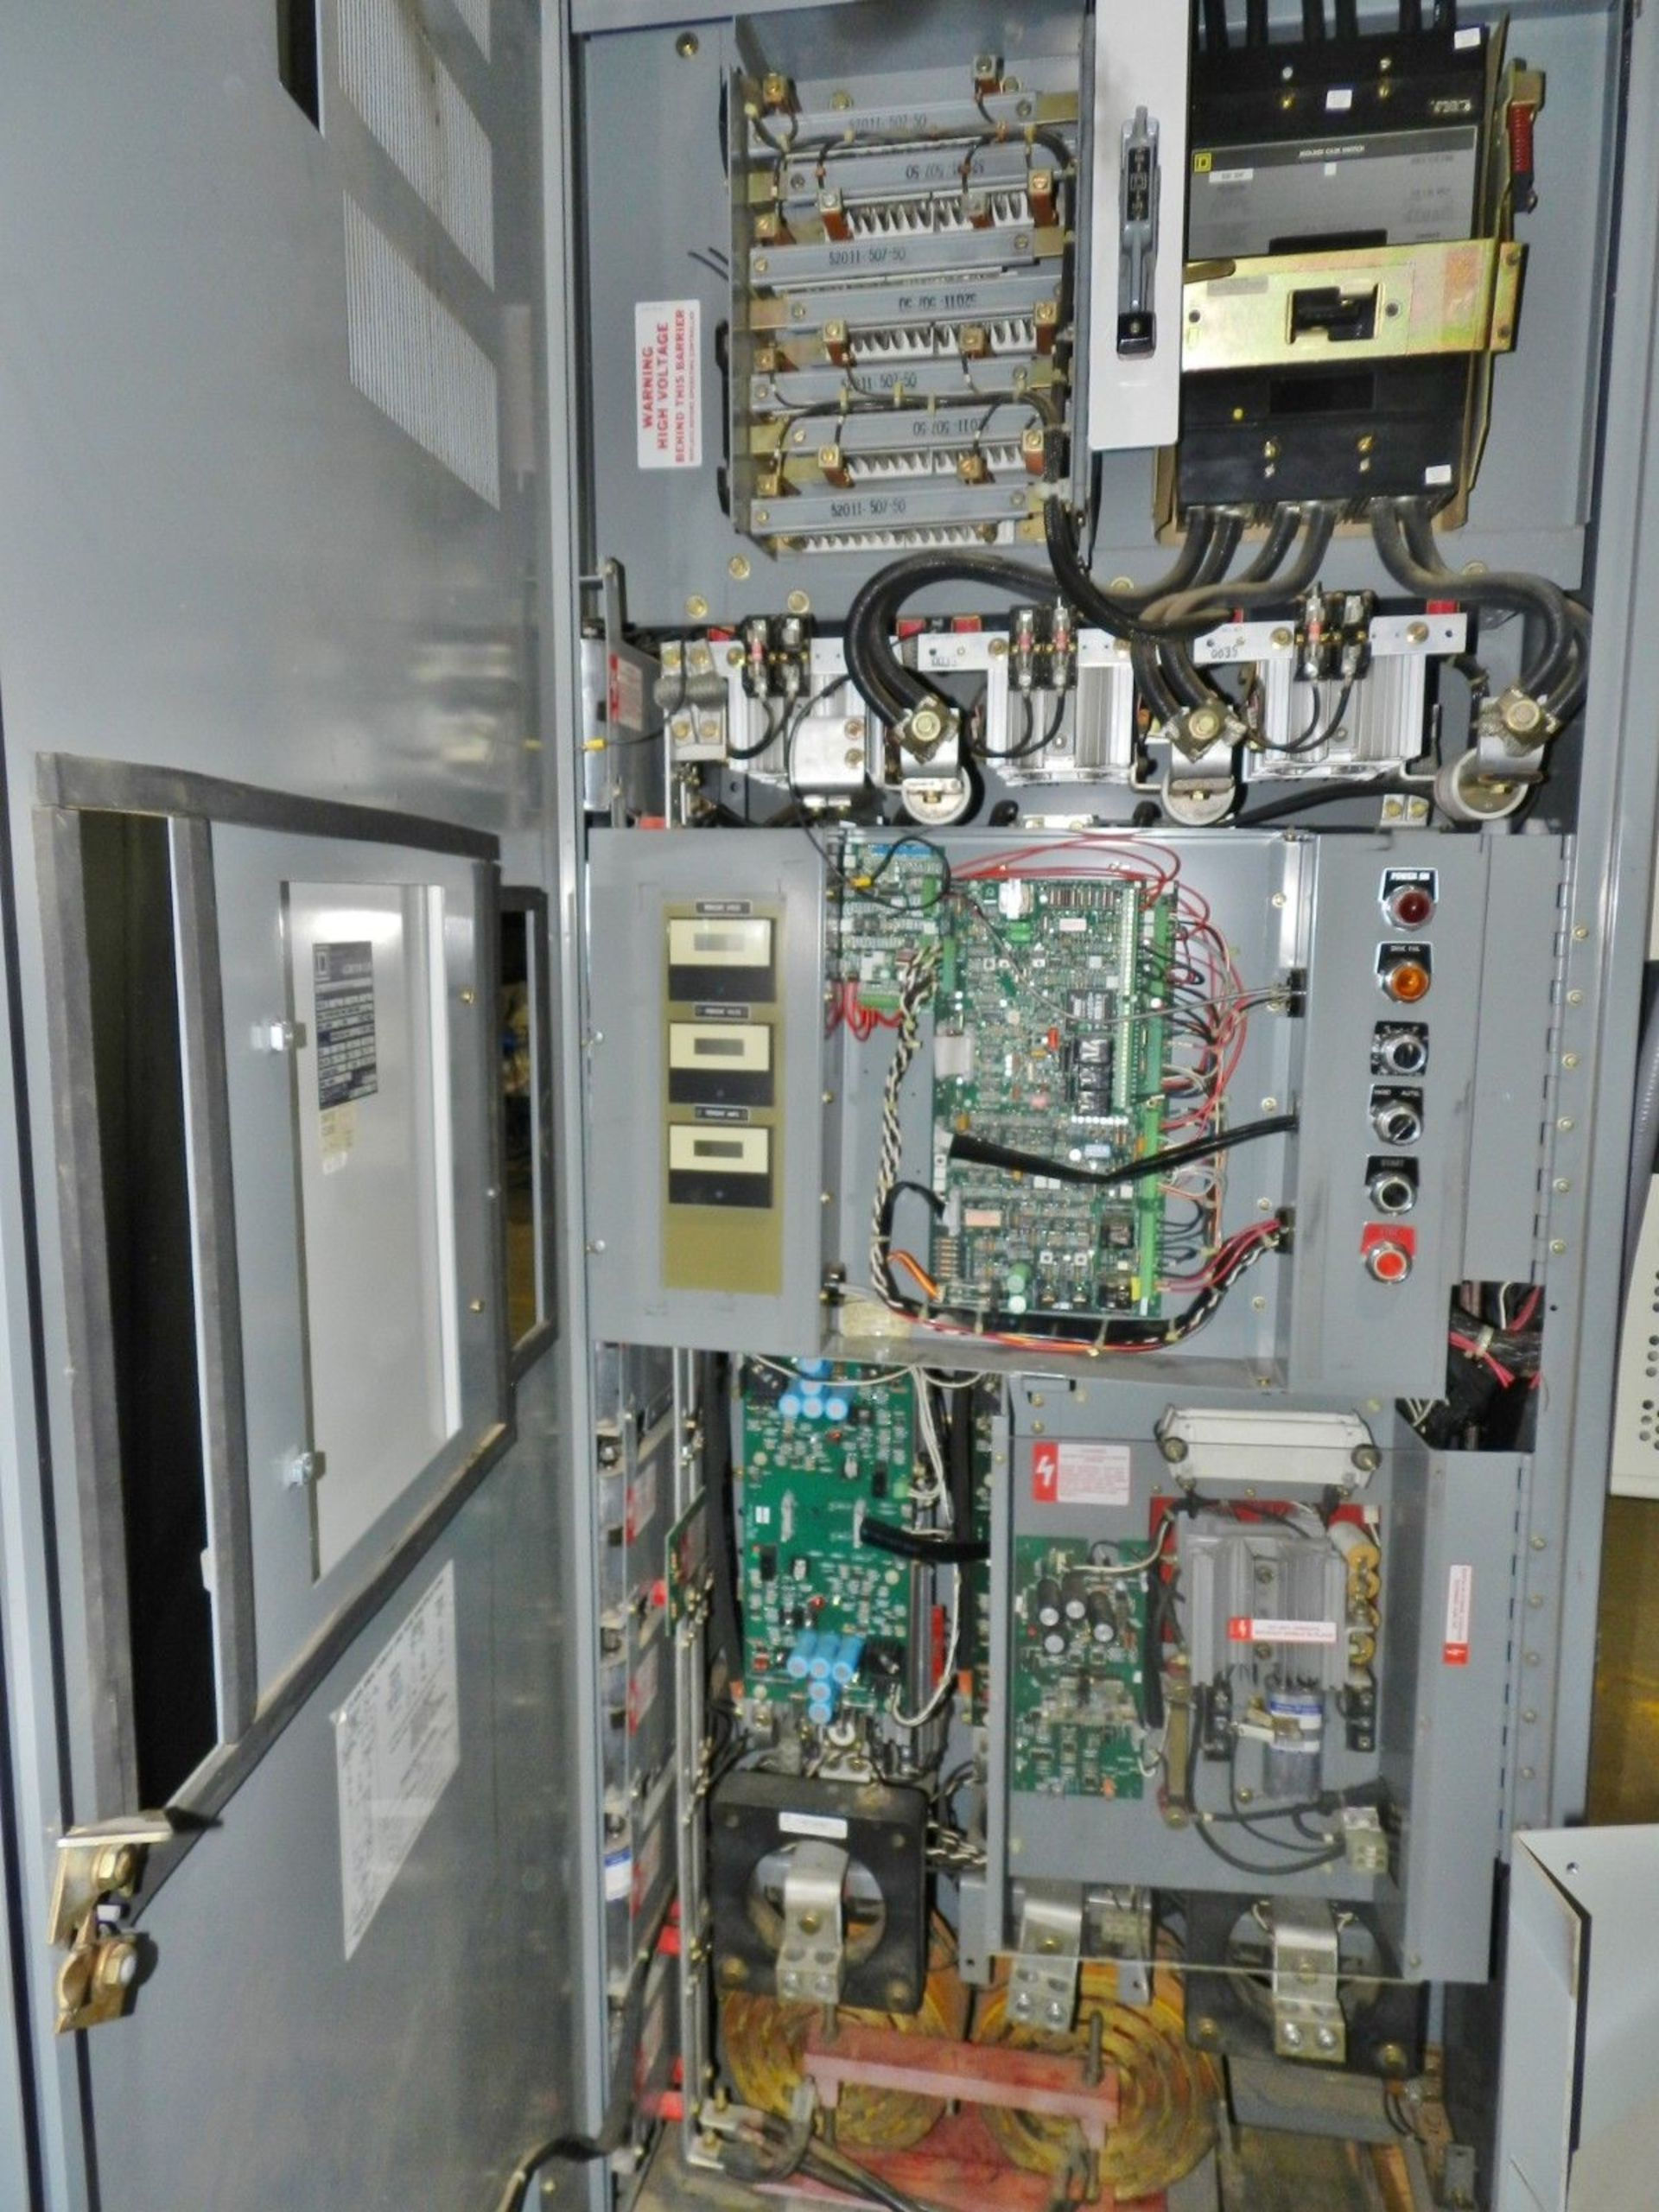 Lot 16 - Square D Omegapak 300 HP Adjustable Frequency Controller